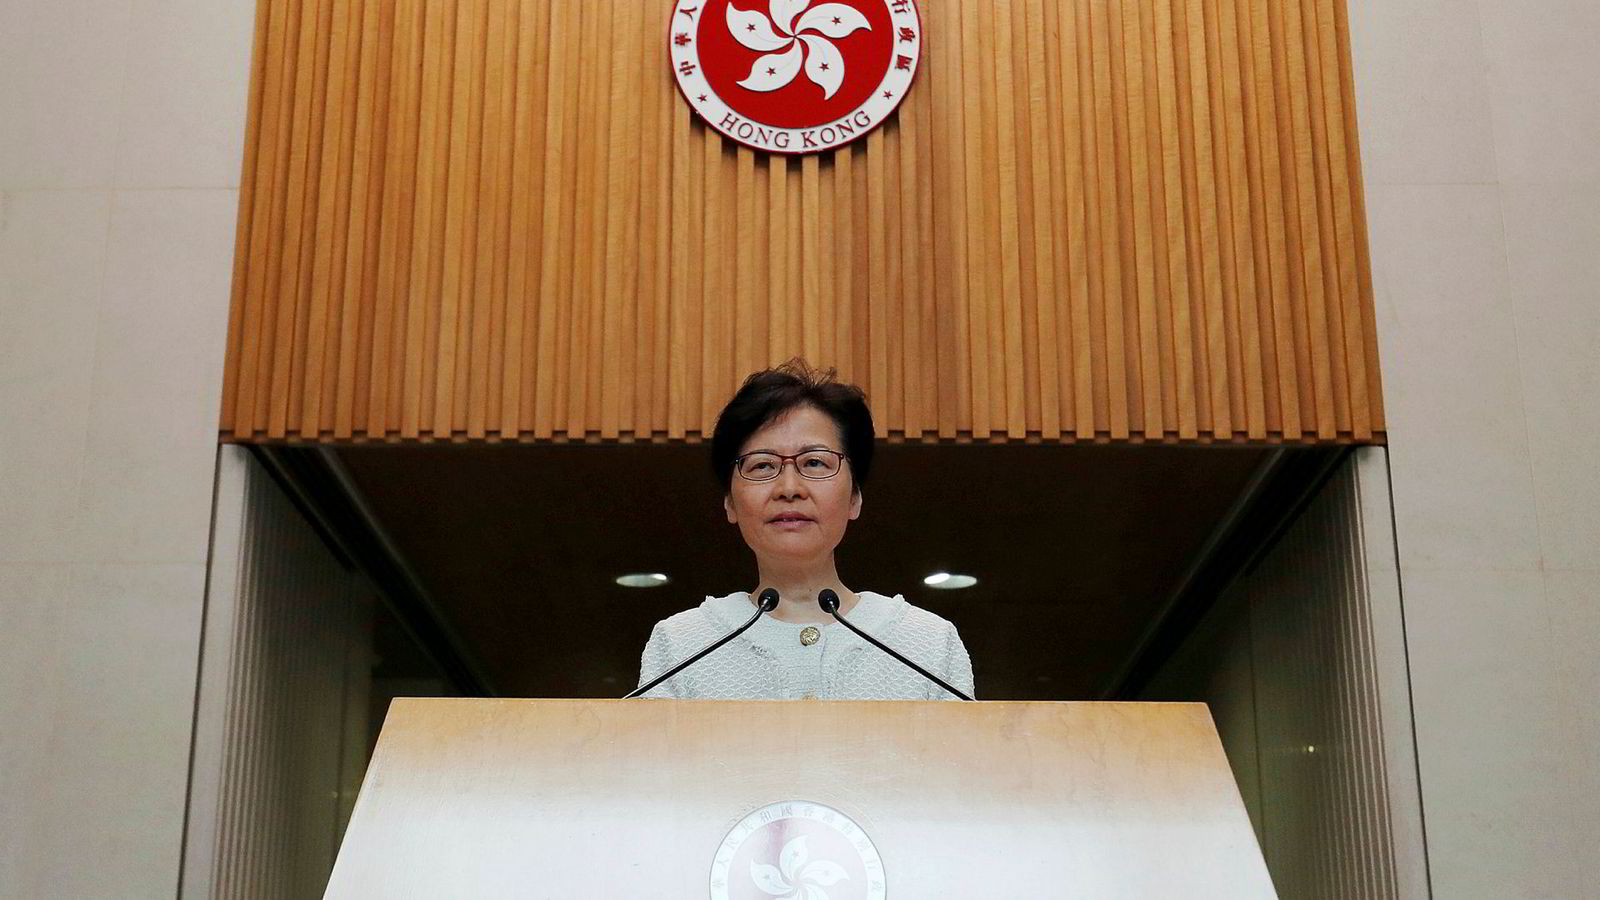 Hongkong's Chief Executive Carrie Lam attends a news conference in Hongkong, China September 10, 2019. REUTERS/Amr Abdallah Dalsh